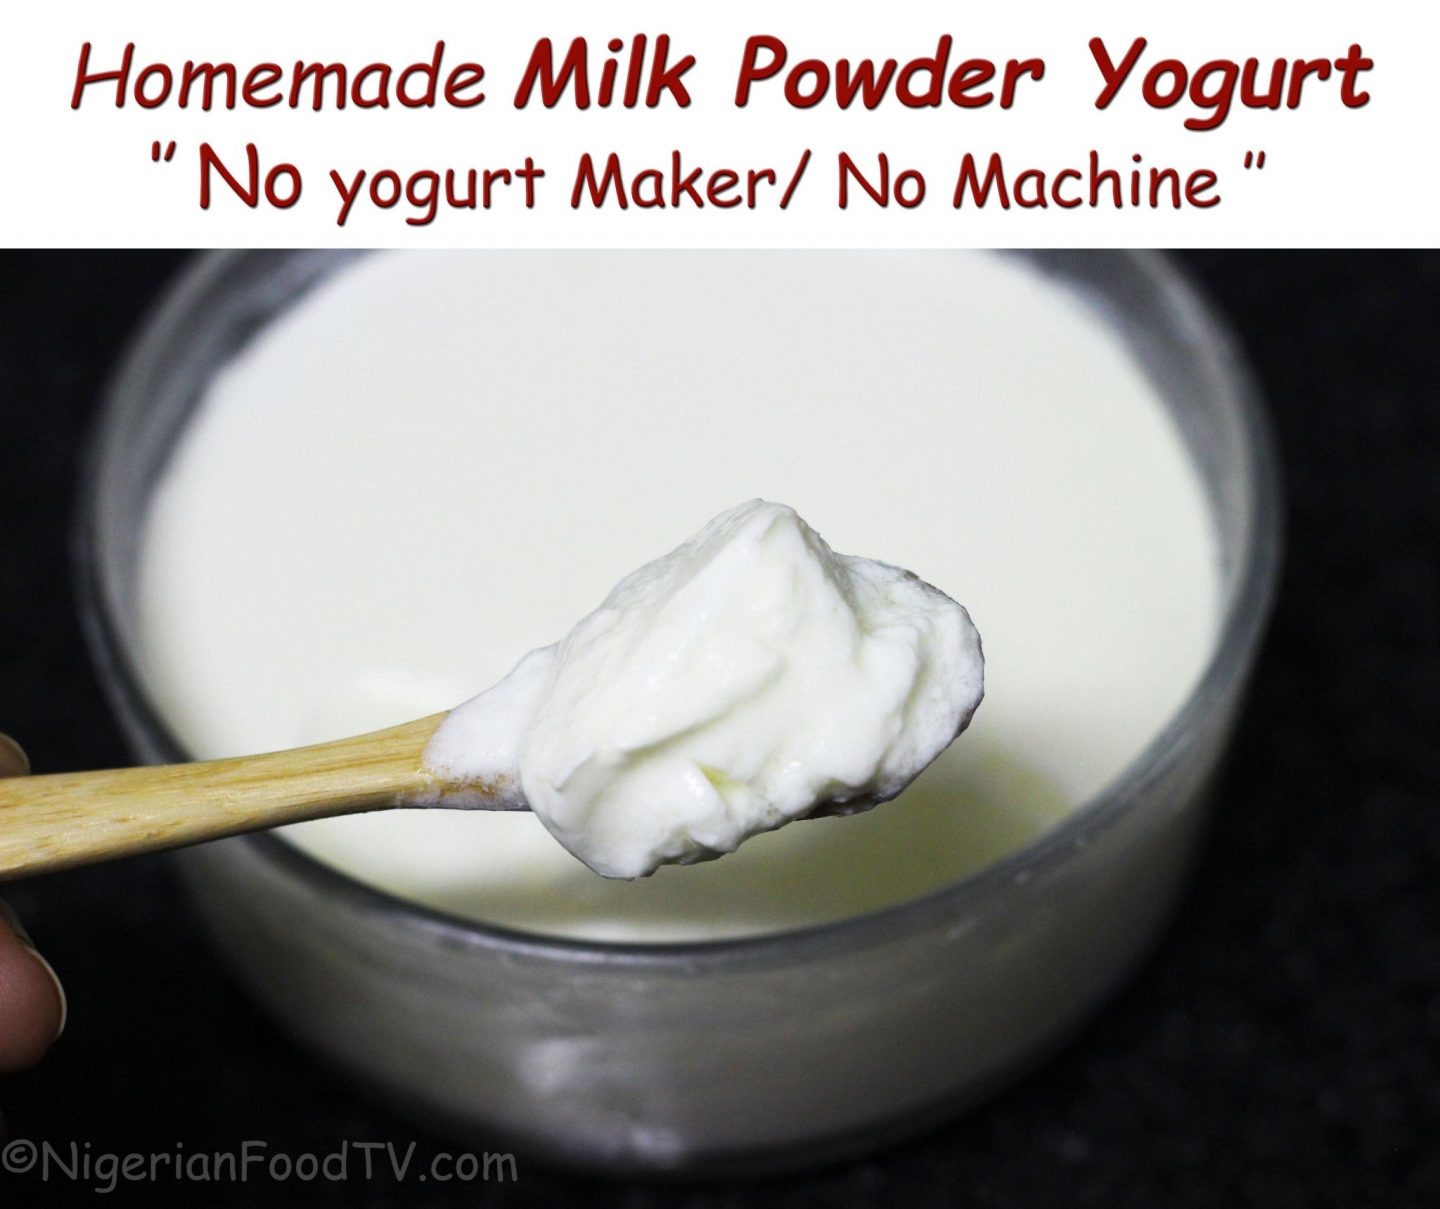 Homemade Yogurt With Powdered Milk – No Yogurt maker